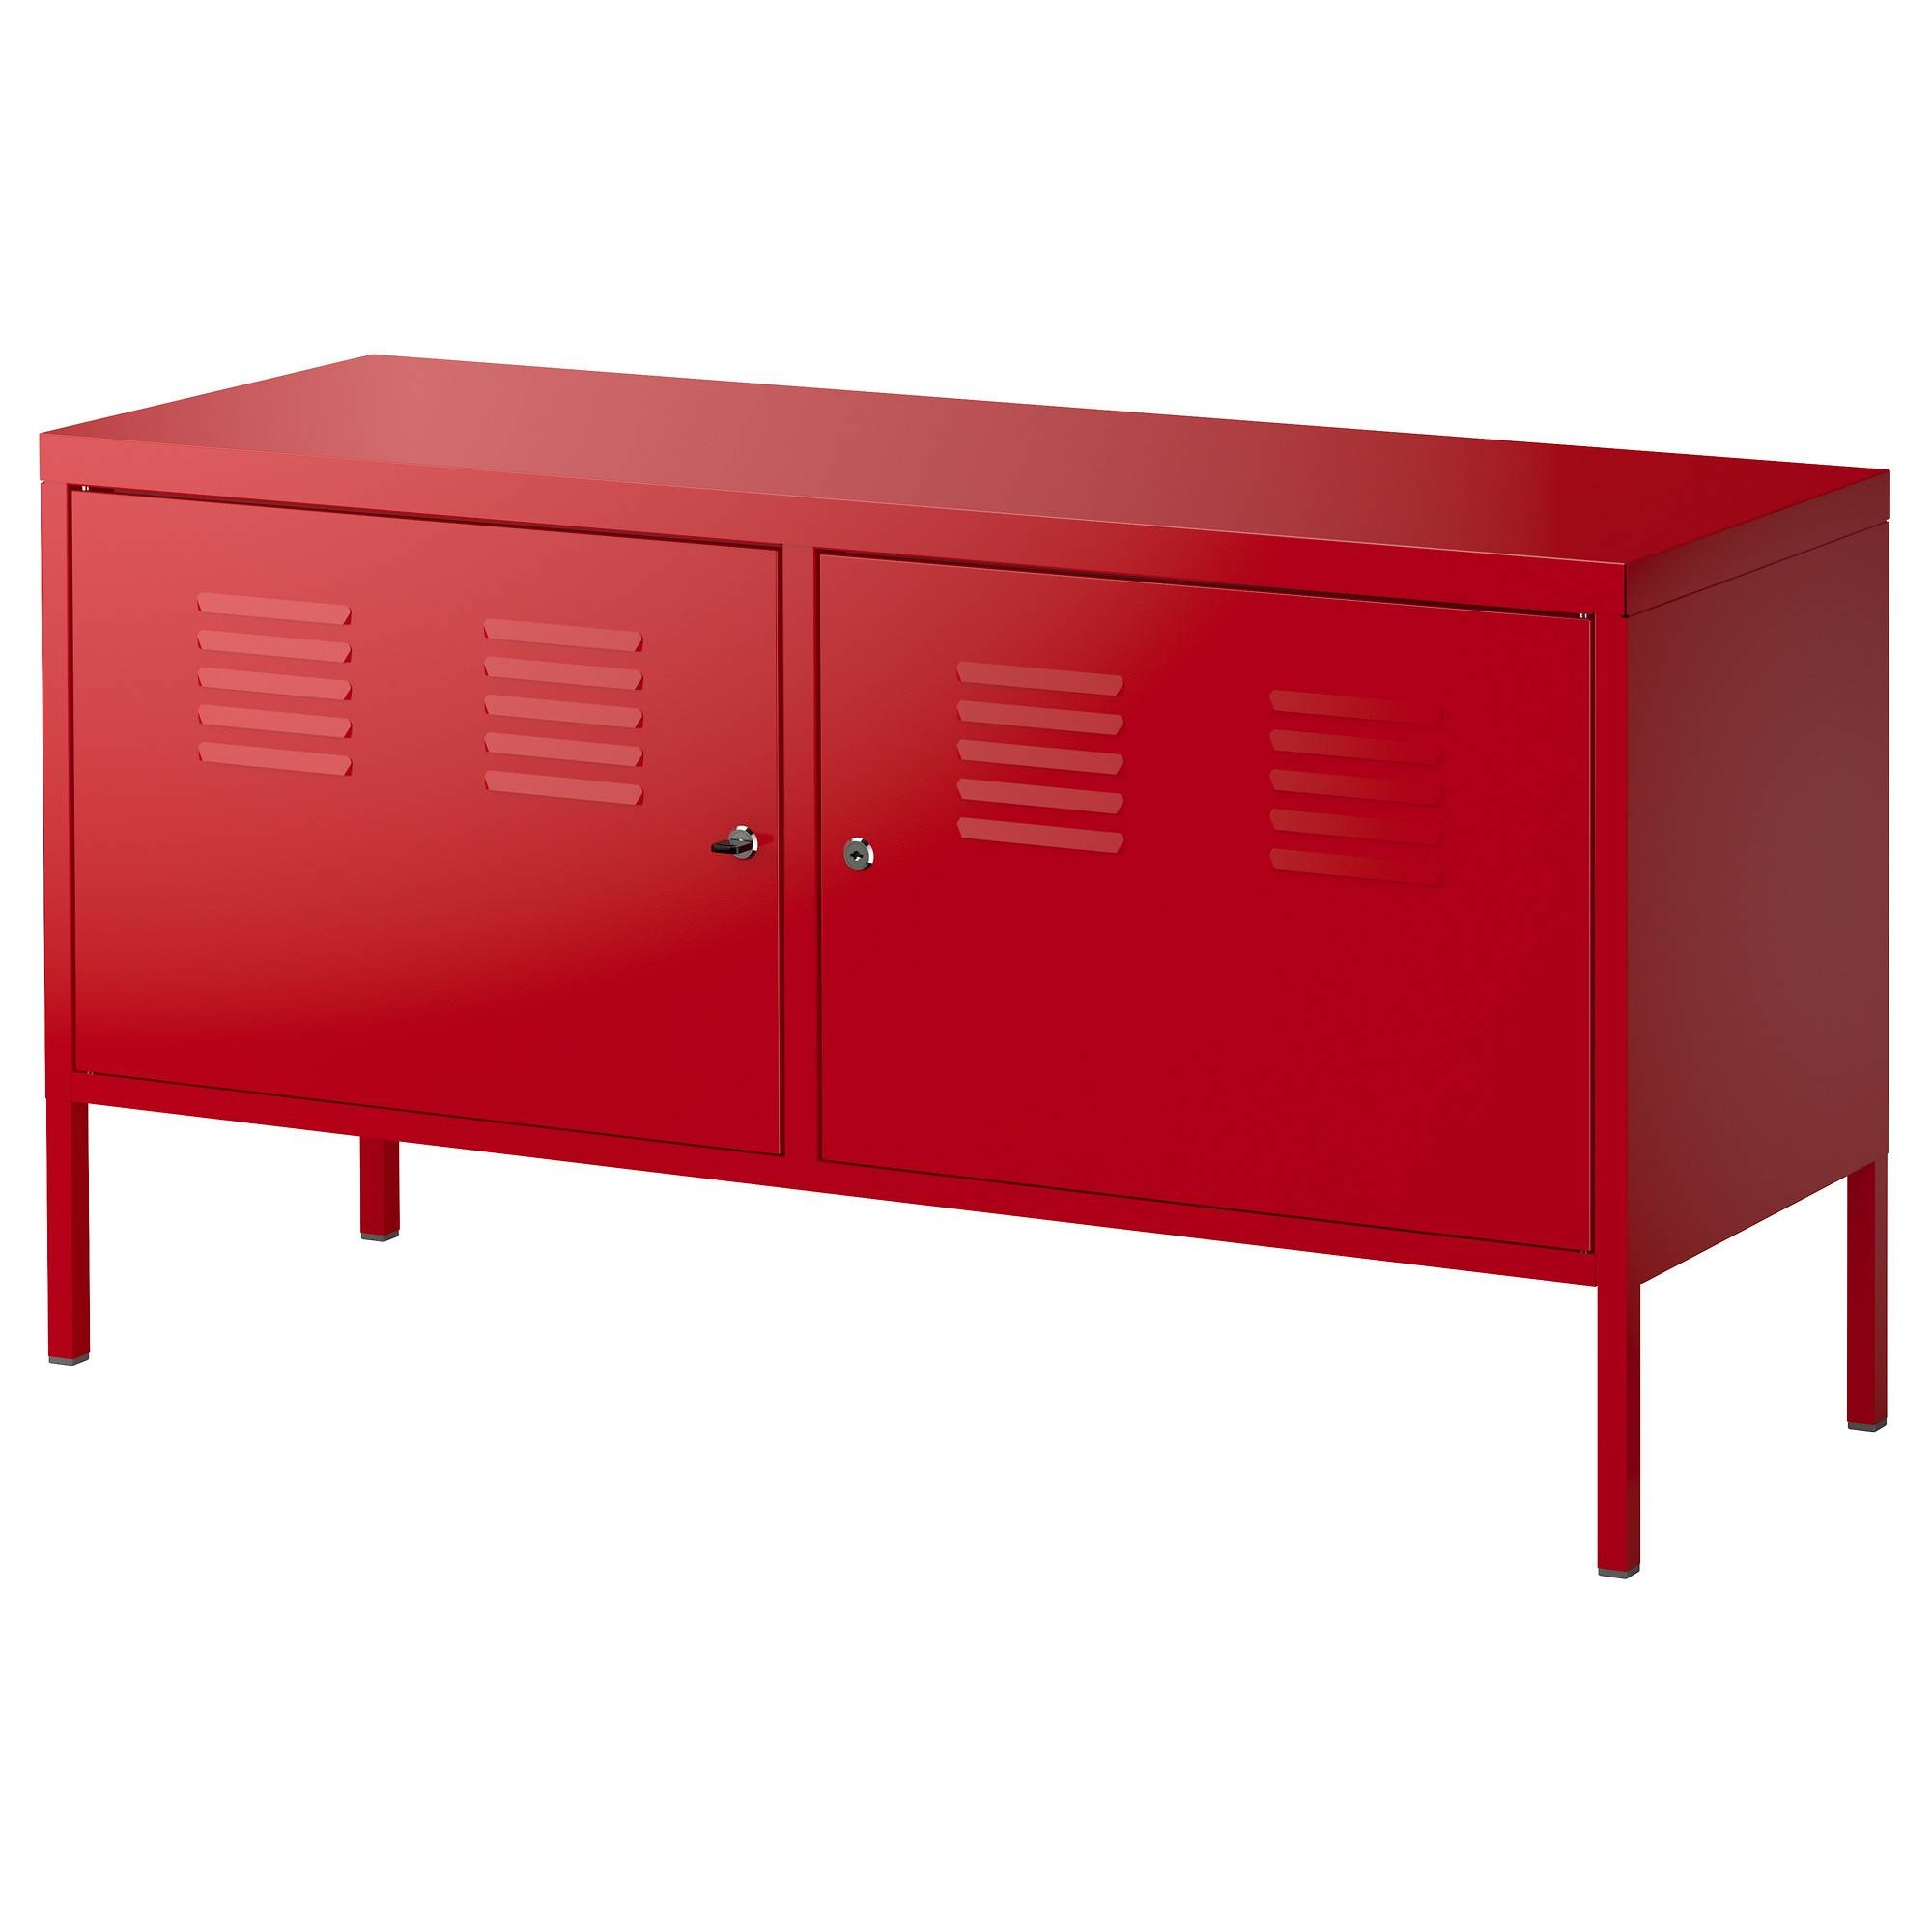 Cabinets & Console Tables - Ikea within Shallow Sideboard Cabinets (Image 9 of 30)